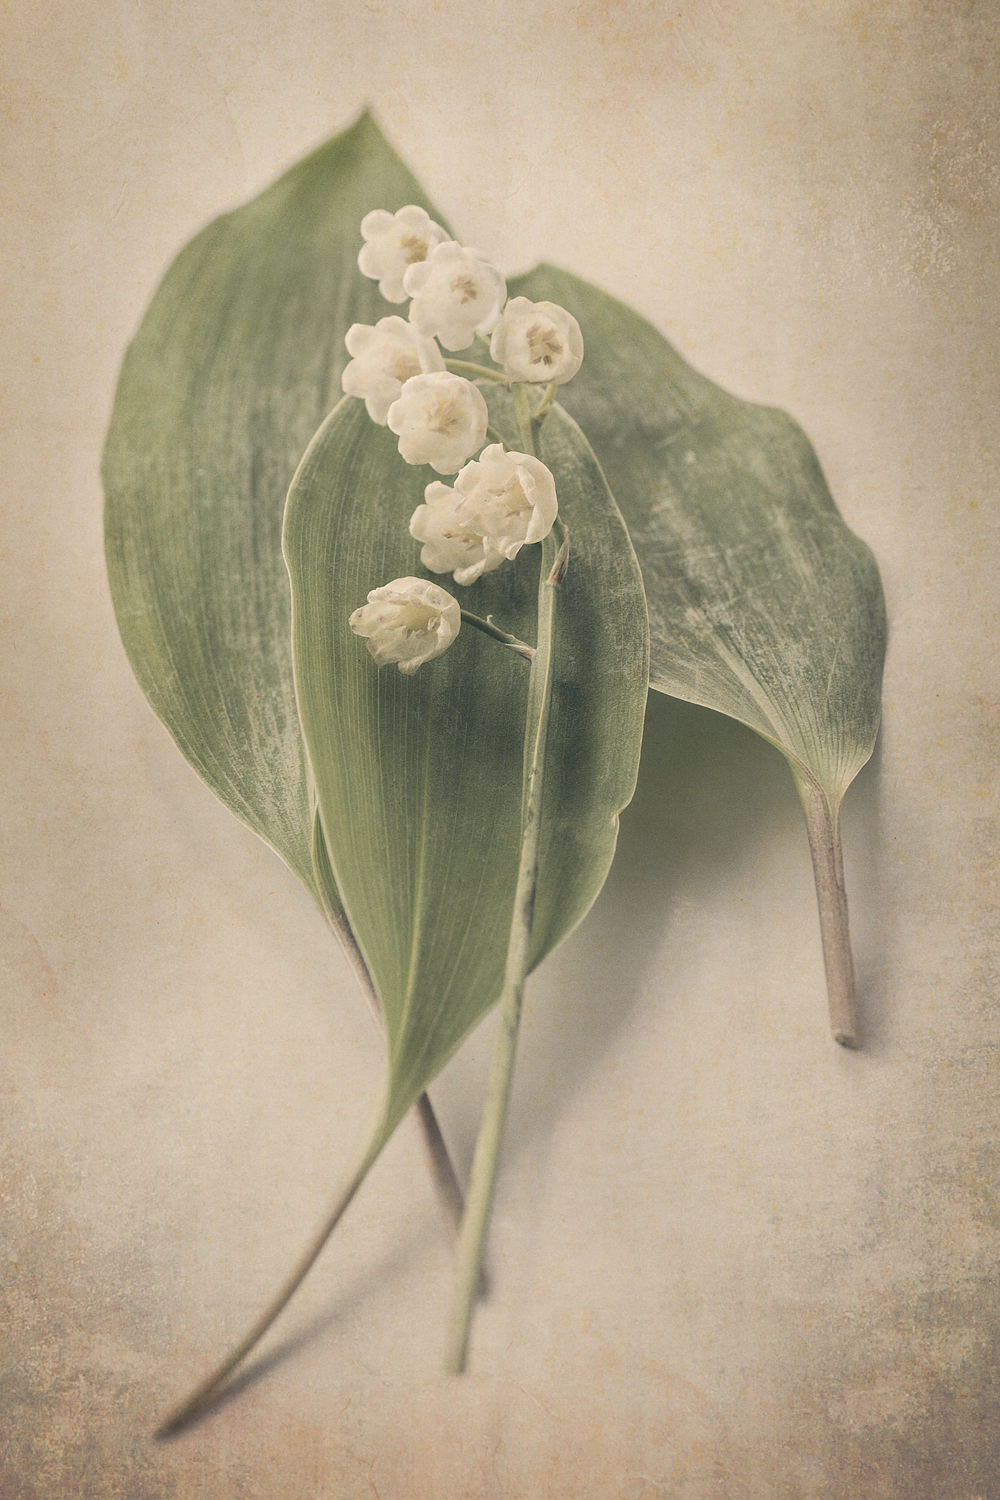 Scents of Spring - Lily of the Valley iv